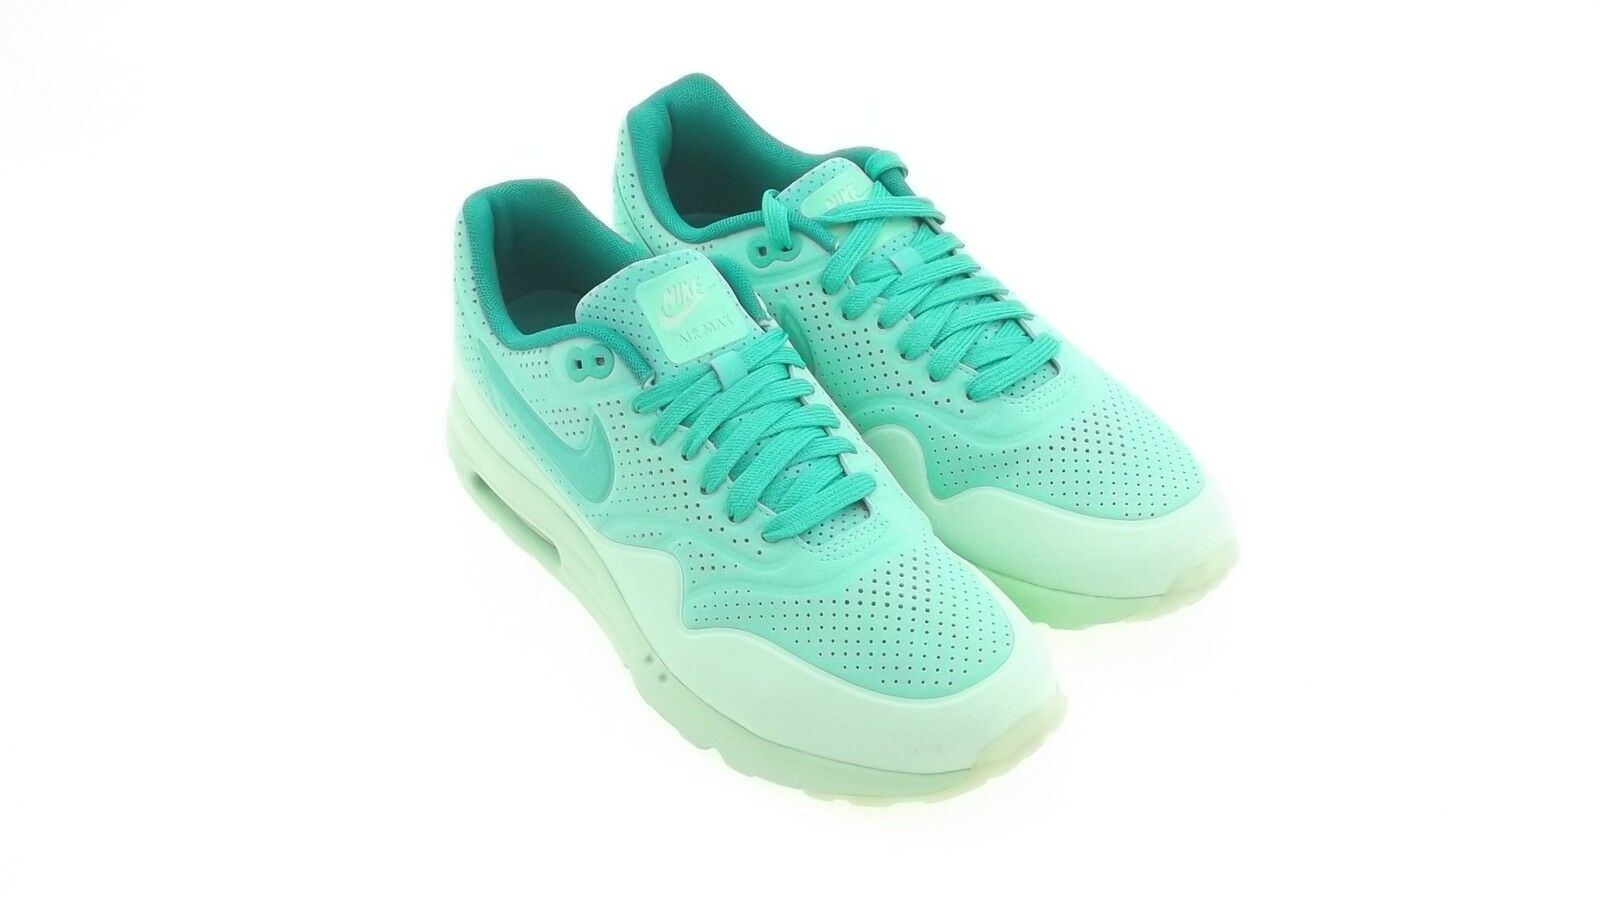 705297-300 Nike Men Air Max 1 Ultra Moire Grün